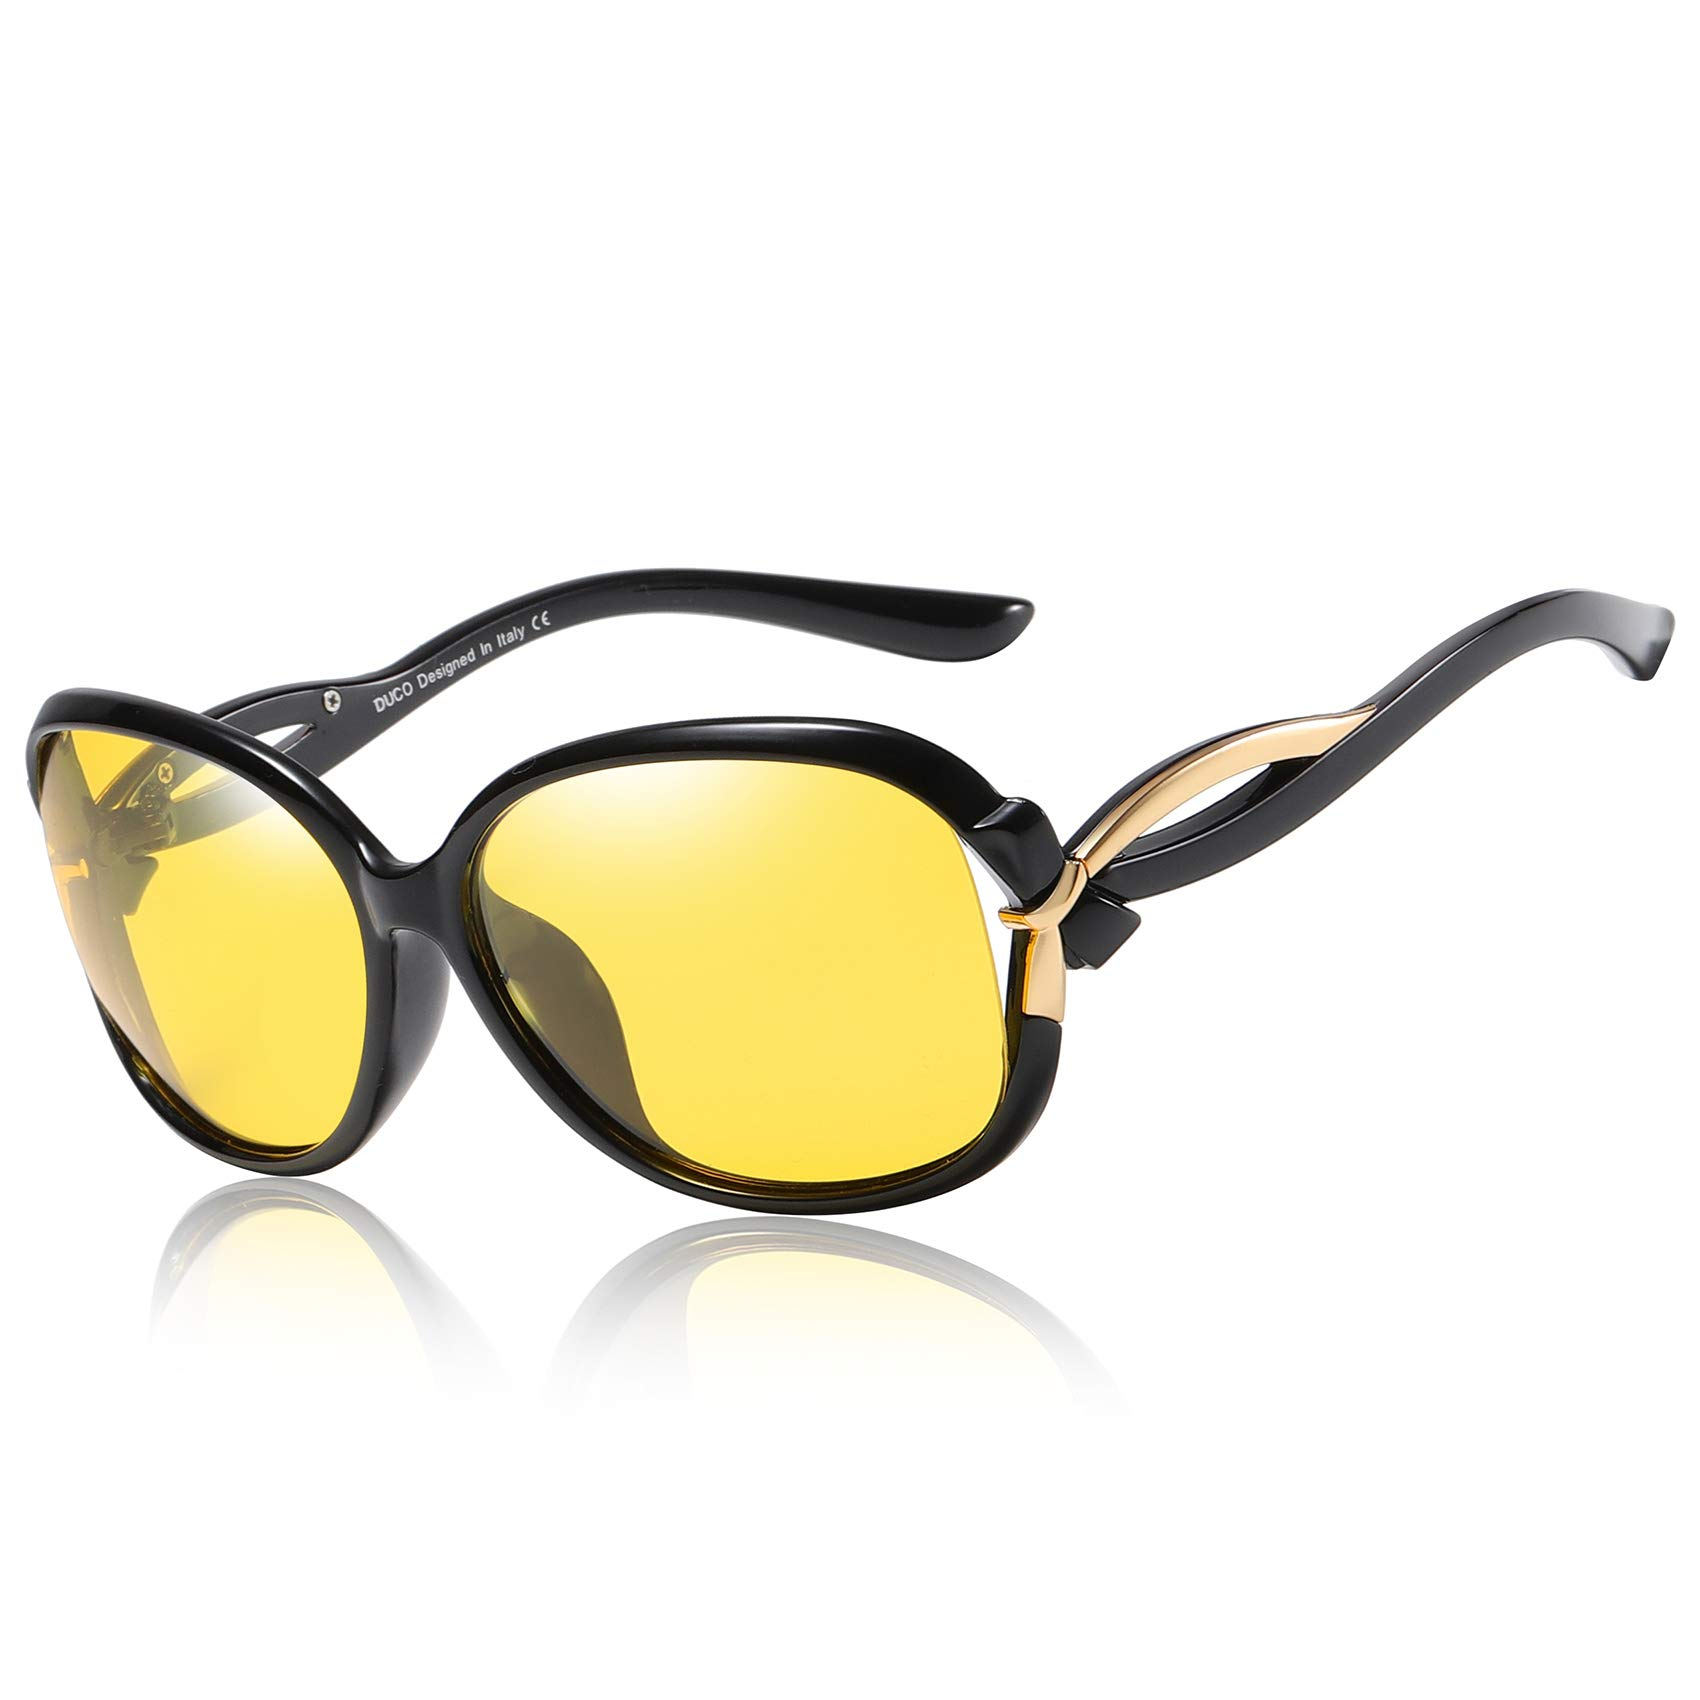 Duco Night Driving Glasses Anti-glare Eyewear Polarized HD Night Driving Vision Glasses For Women 2229 (Black) by DUCO